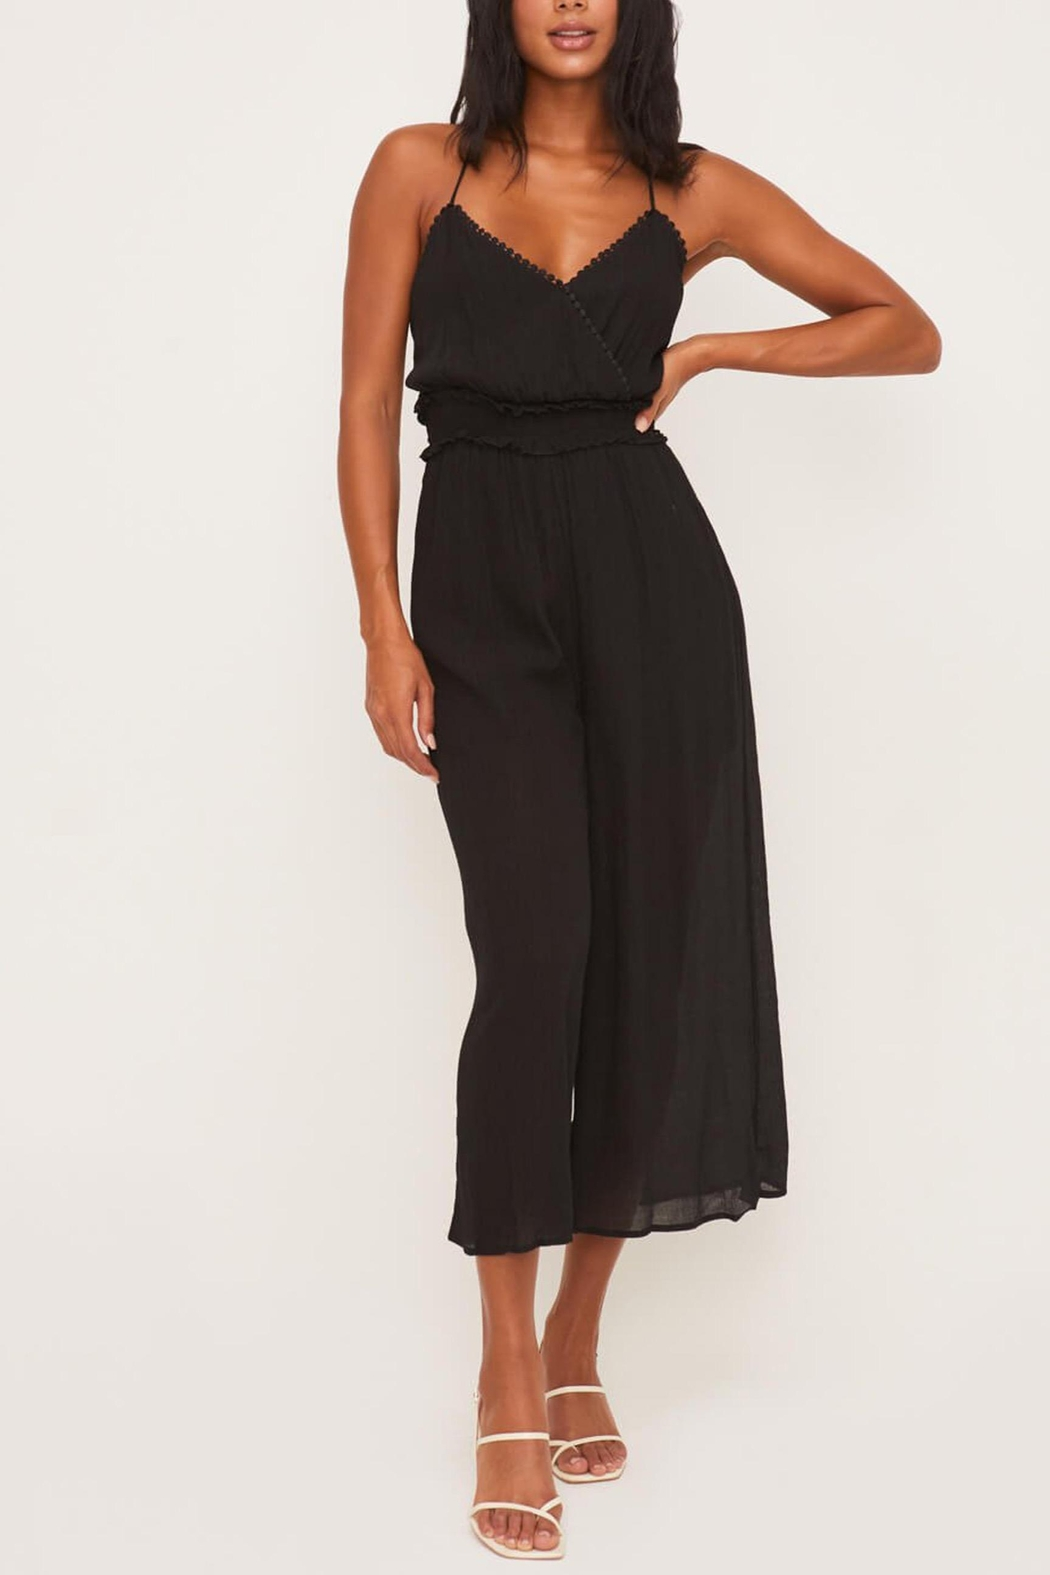 Lush Clothing  Strappy-Back Smocked Jumpsuit - Side Cropped Image